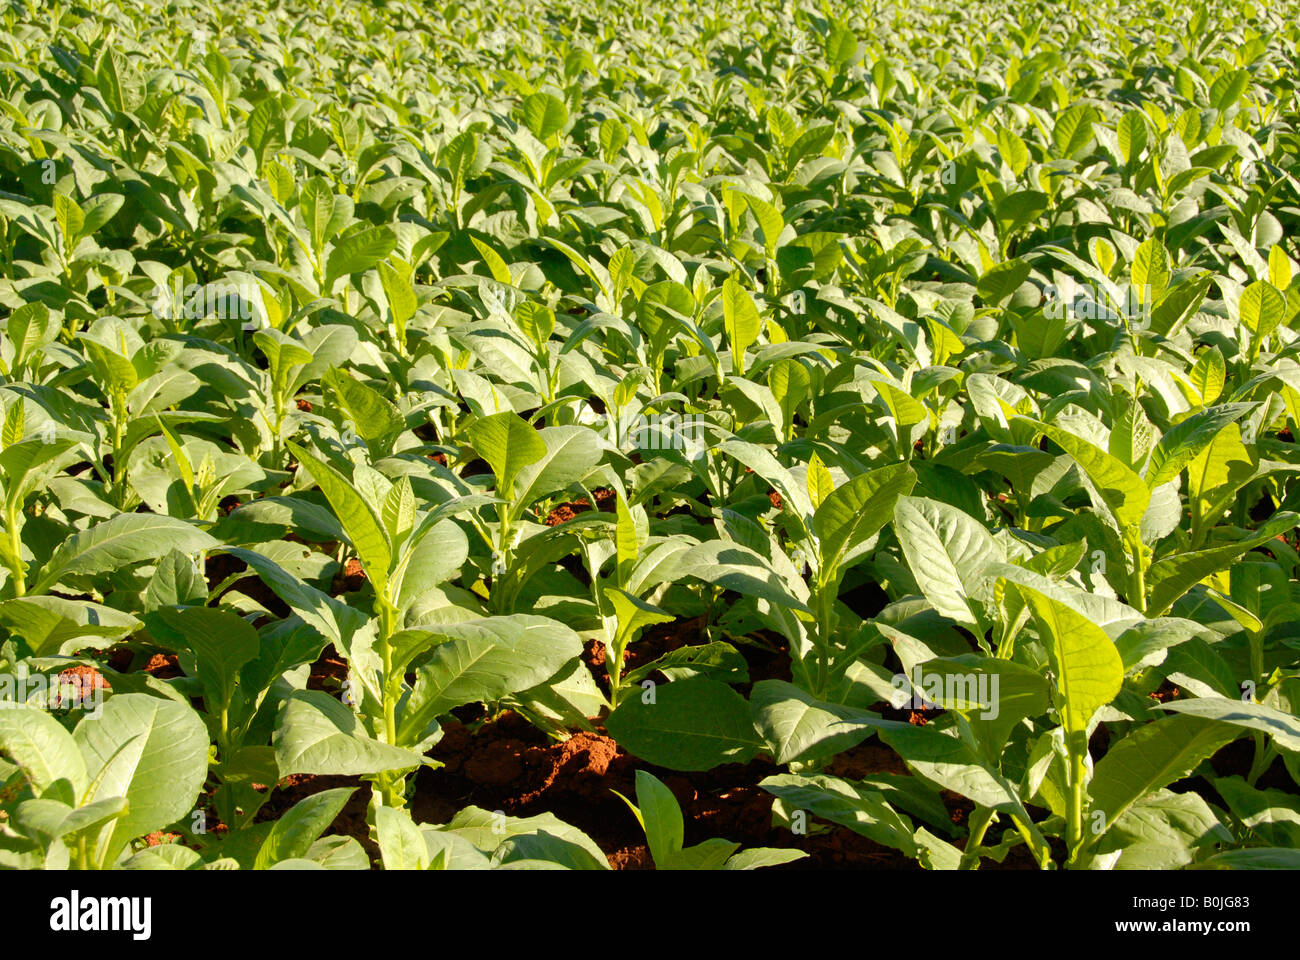 Close up view of a tobacco plantation - Stock Image